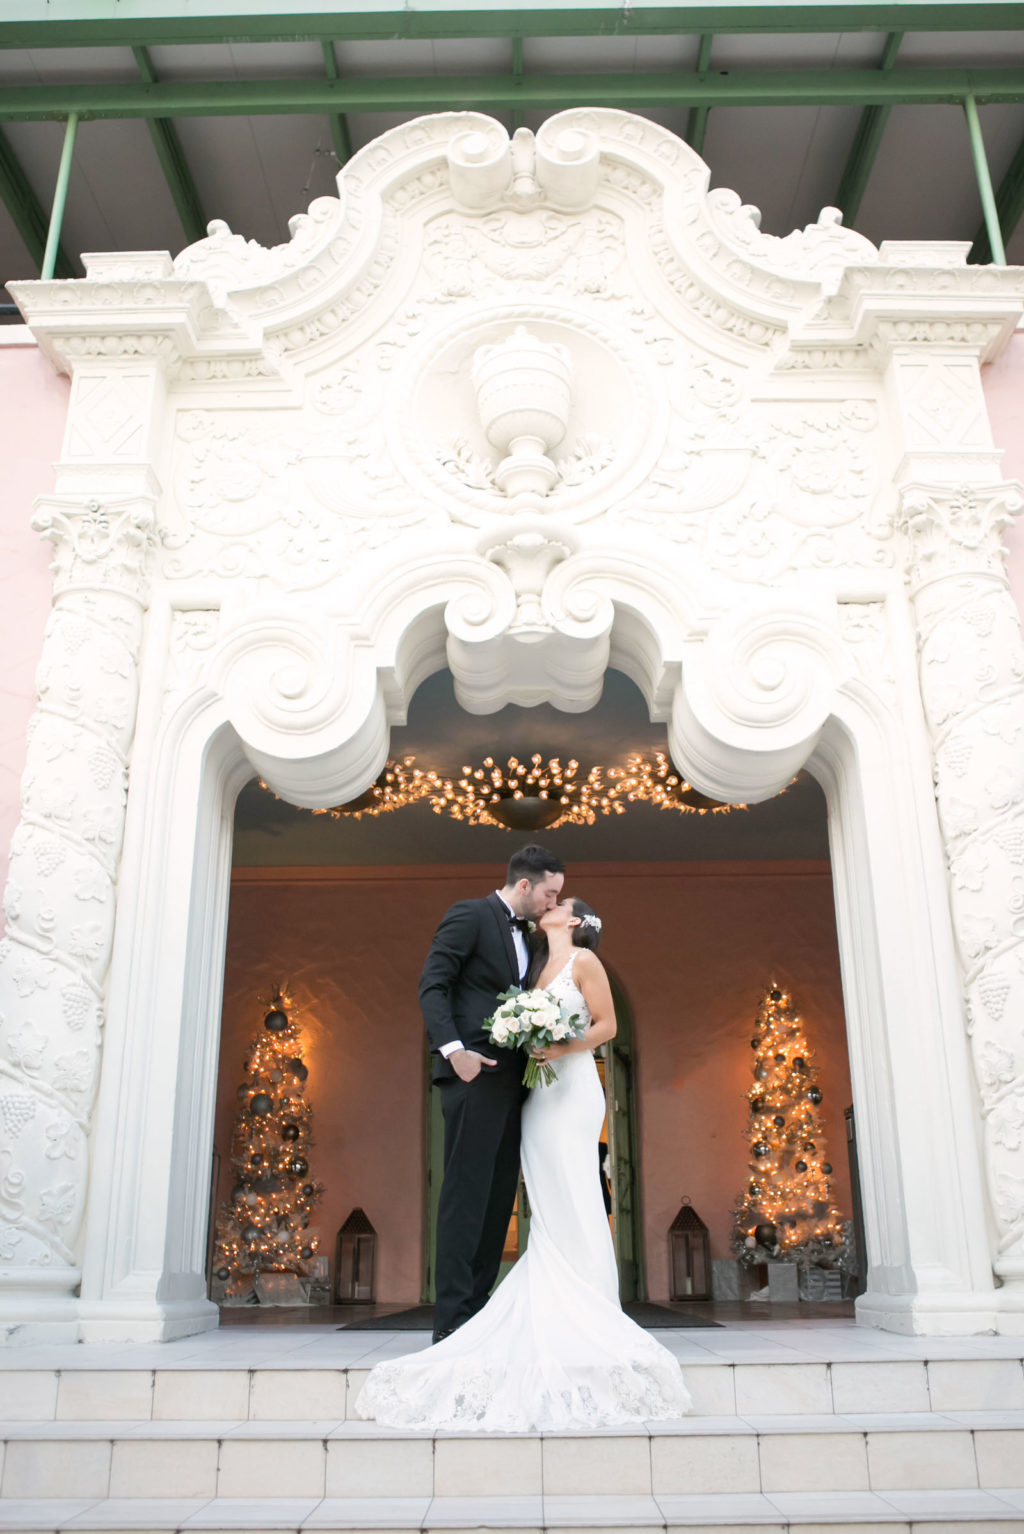 Elegant Classic Bride in Romantic Lace Train and Crepe Fitted Wedding Dress Holding White and Greenery Floral Bouquet, Groom in Classic Black Tux Under Arch of St. Pete Wedding Venue The Vinoy Renaissance | Tampa Bay Wedding Photographer Carrie Wildes Photography | Wedding Dress Shop Isabel O'Neil Bridal Collection